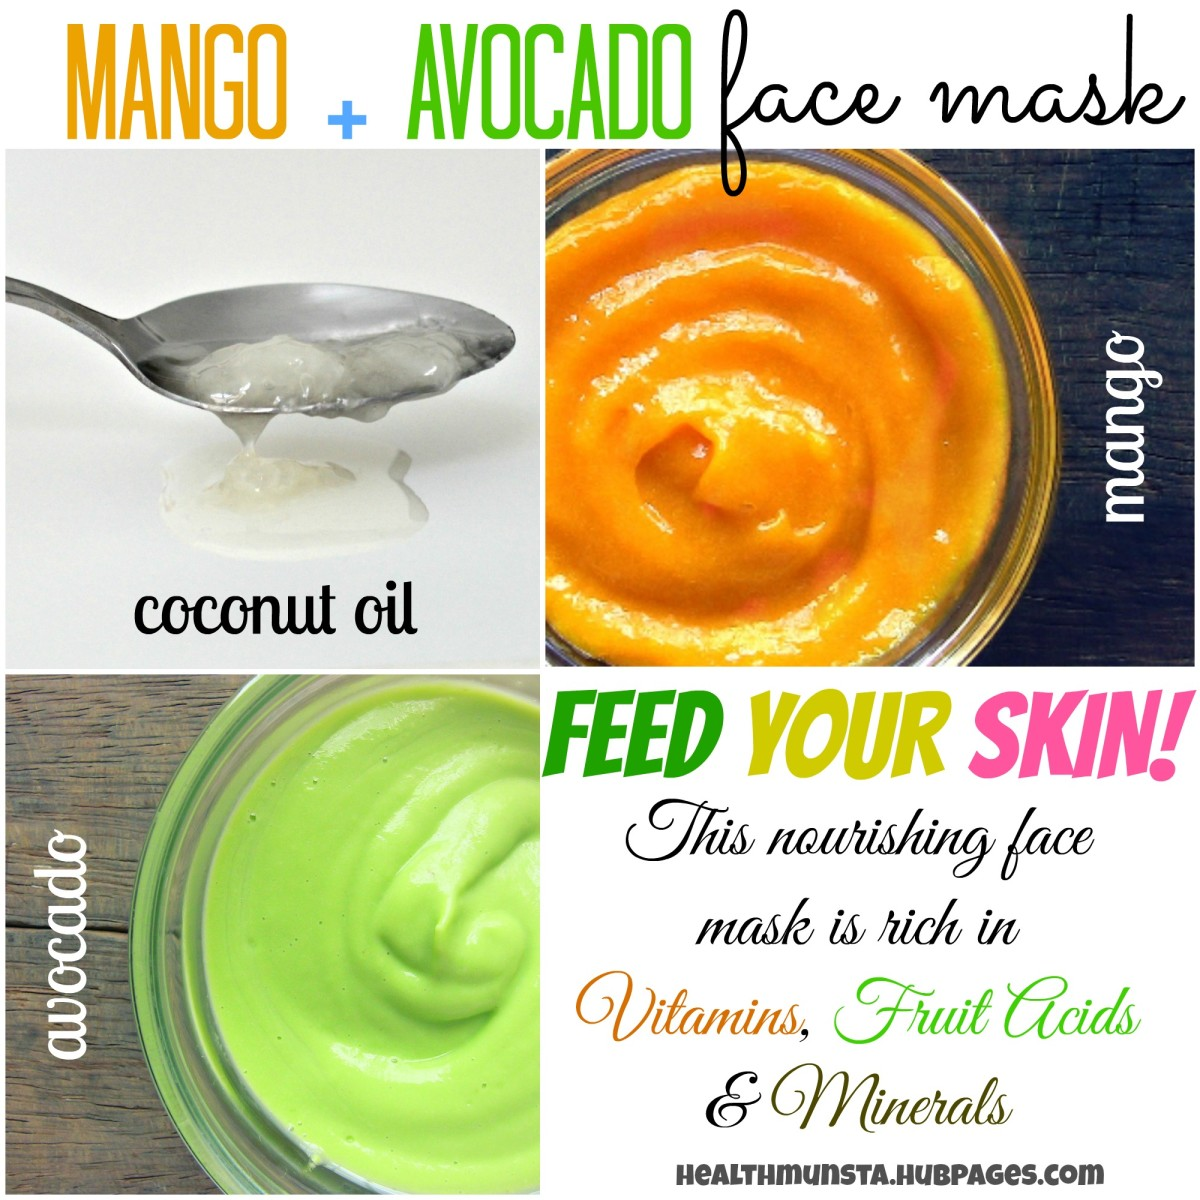 Try this awesome face mask with mango, avocado and coconut oil. Oh God, I never knew mango + coconut oil would smell THIS good!